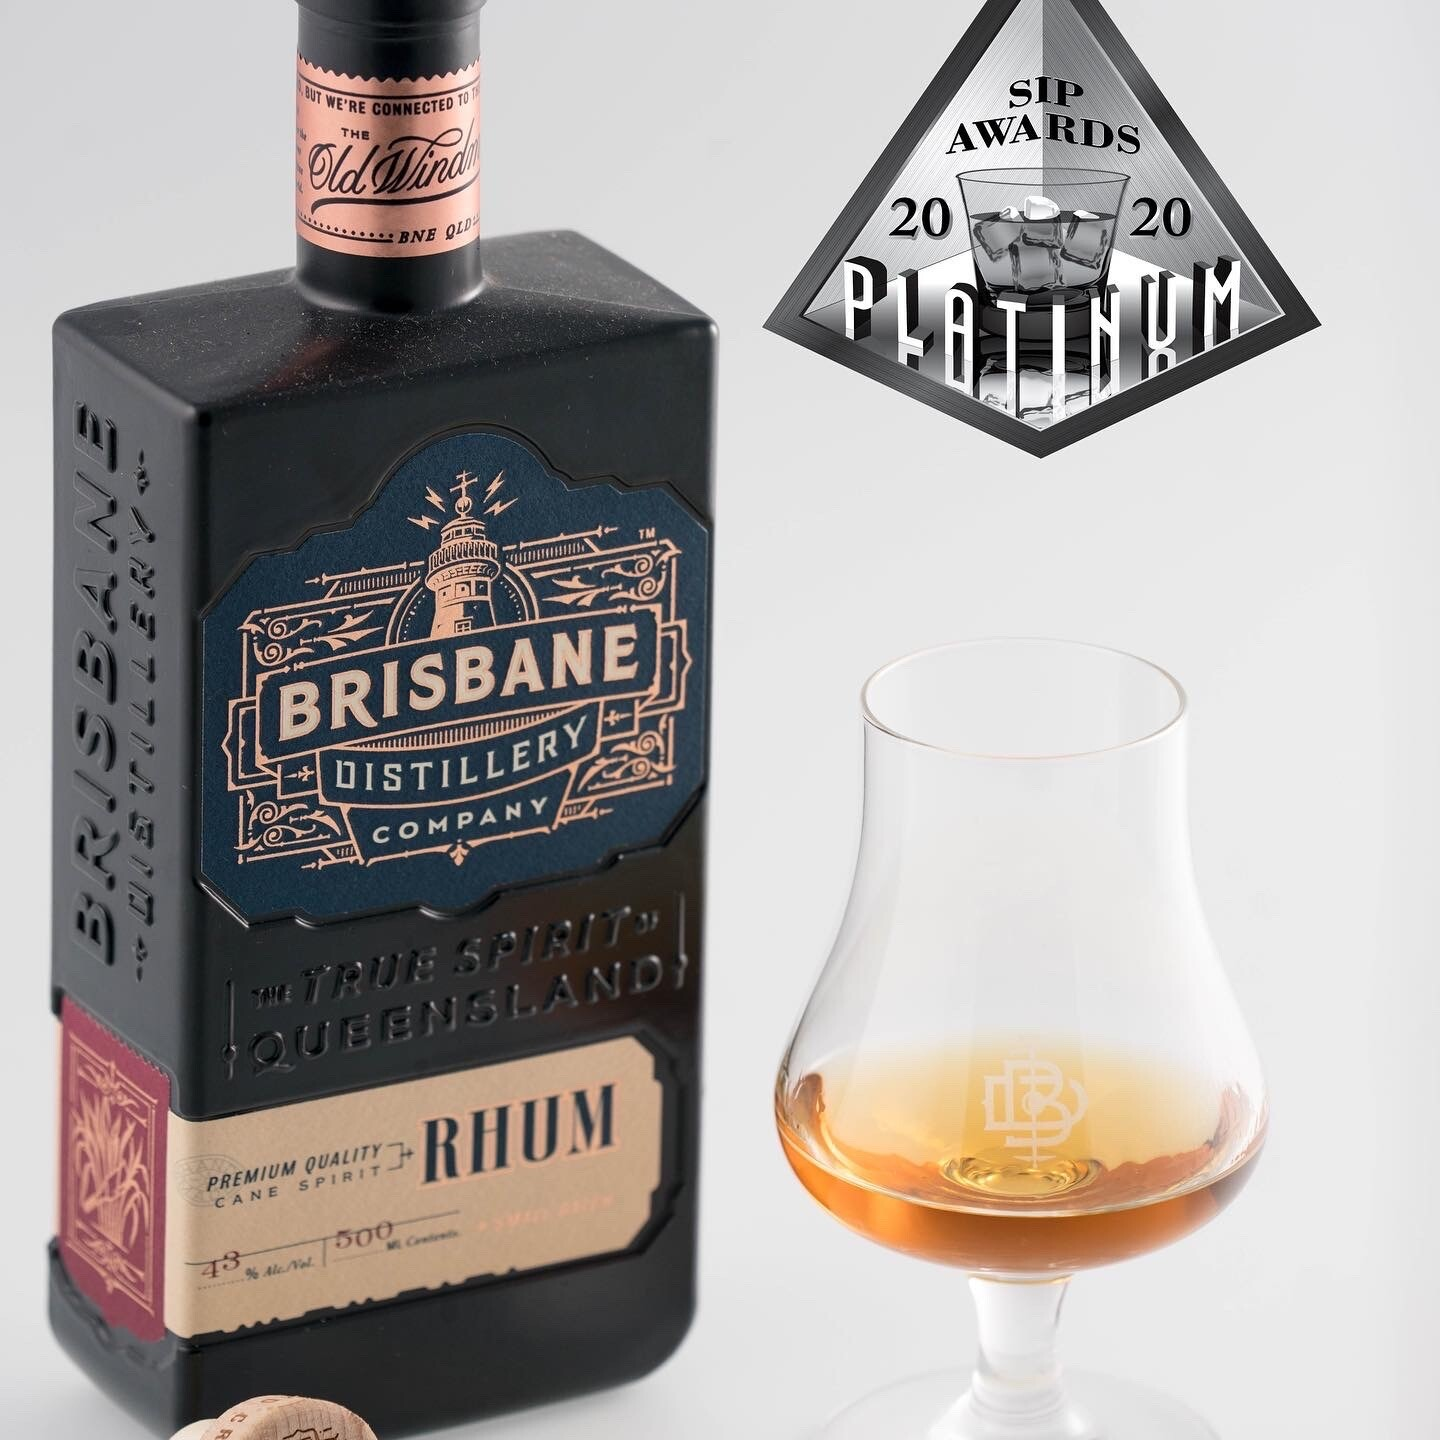 Brown Snake Rhum 2019